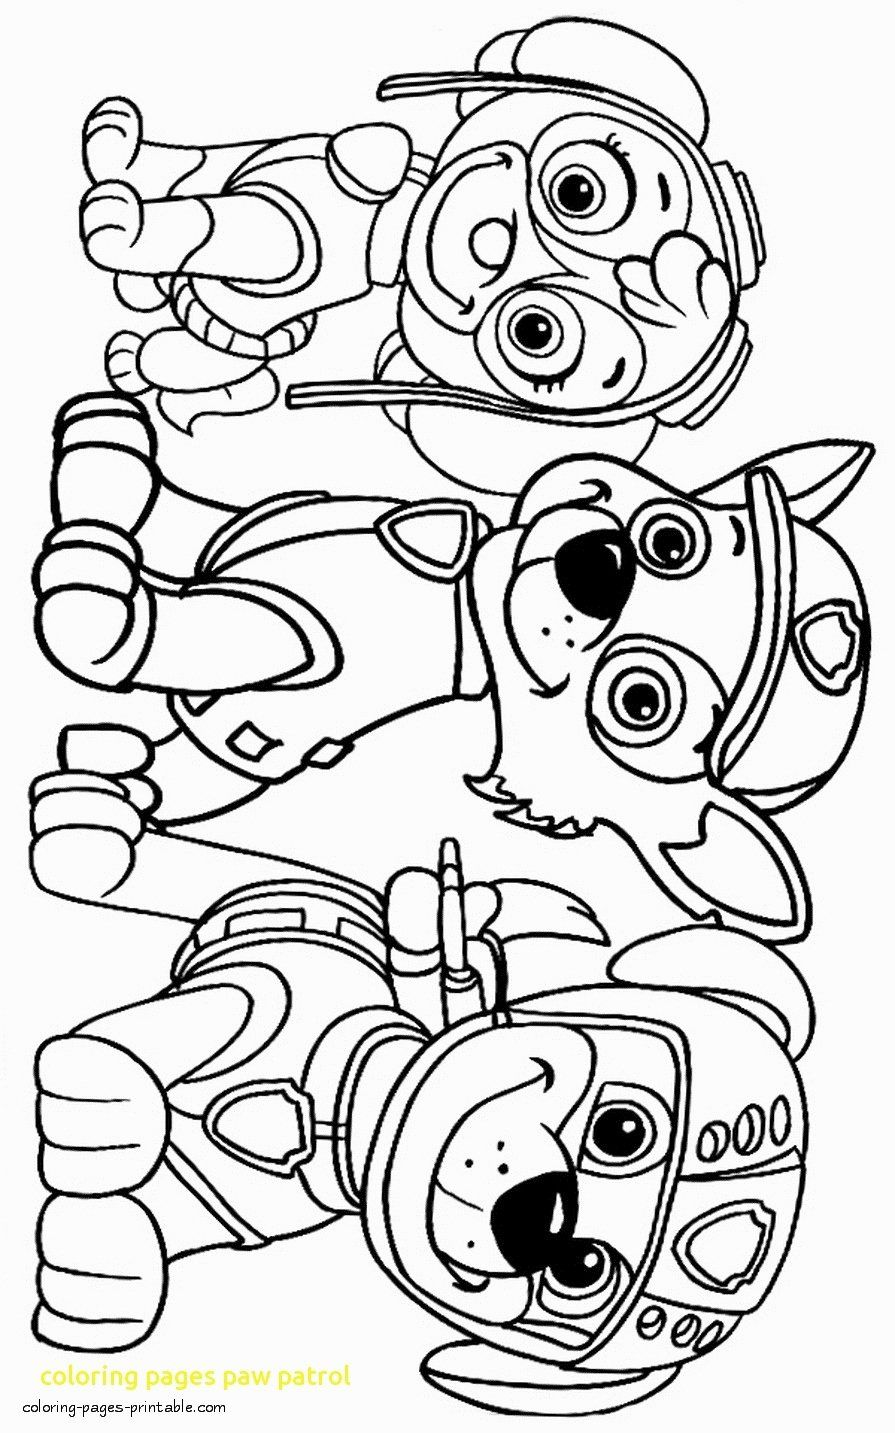 Paw Patrol Coloring Pages For Kids Free